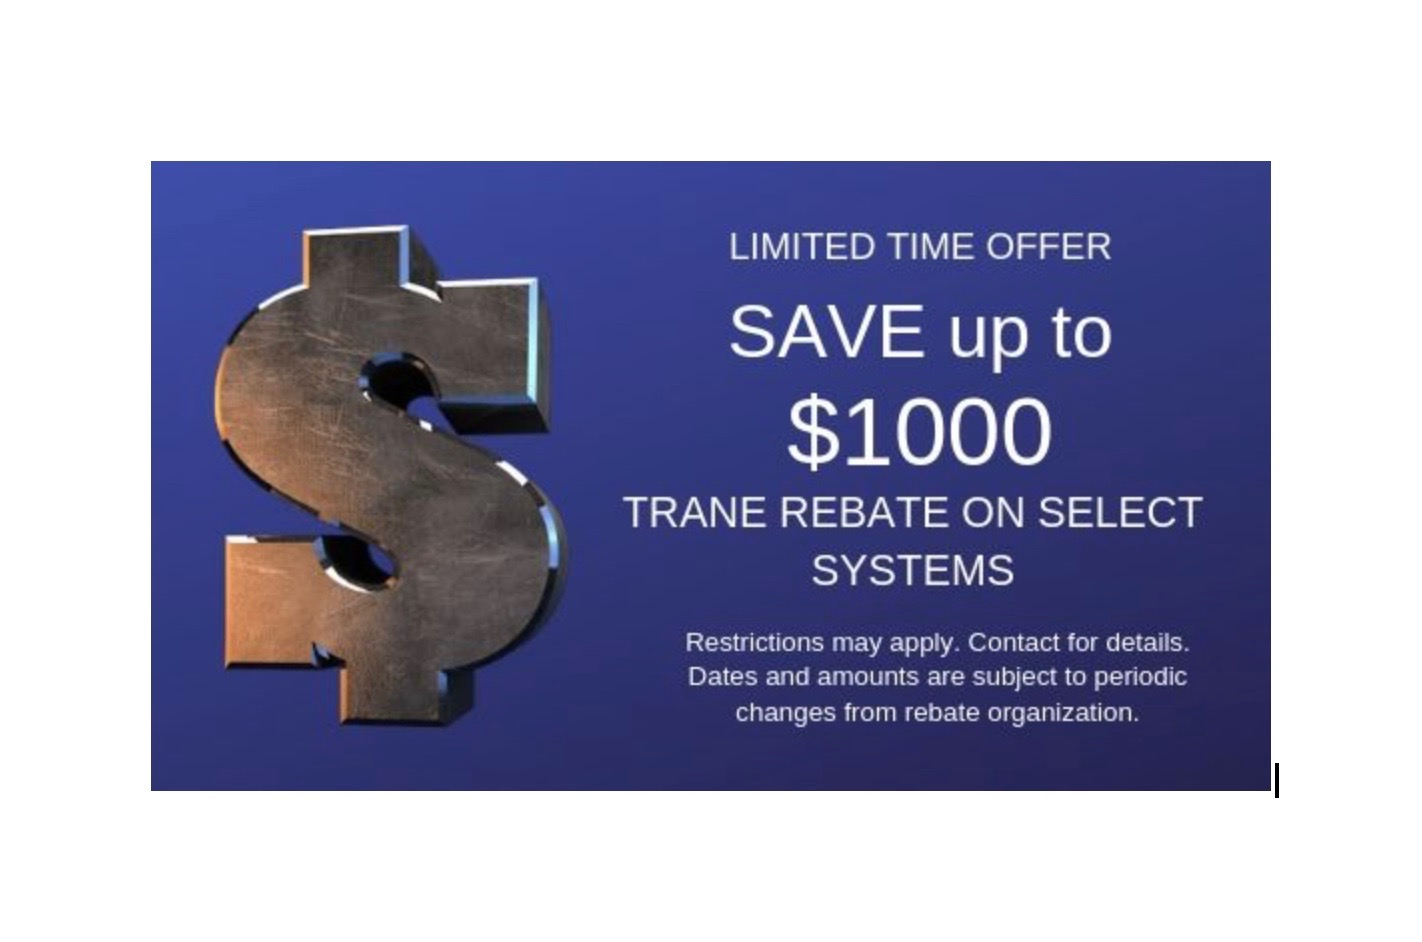 TRANE Rebate - SAVE up to $1000 TRANE Rebate on select systems. Limited Time Offer. Seasonal Offer.Restrictions may apply. Contact for details. Dates and amounts are subject to periodic changes from rebate organization. Call or visit Trane to verify current offers.